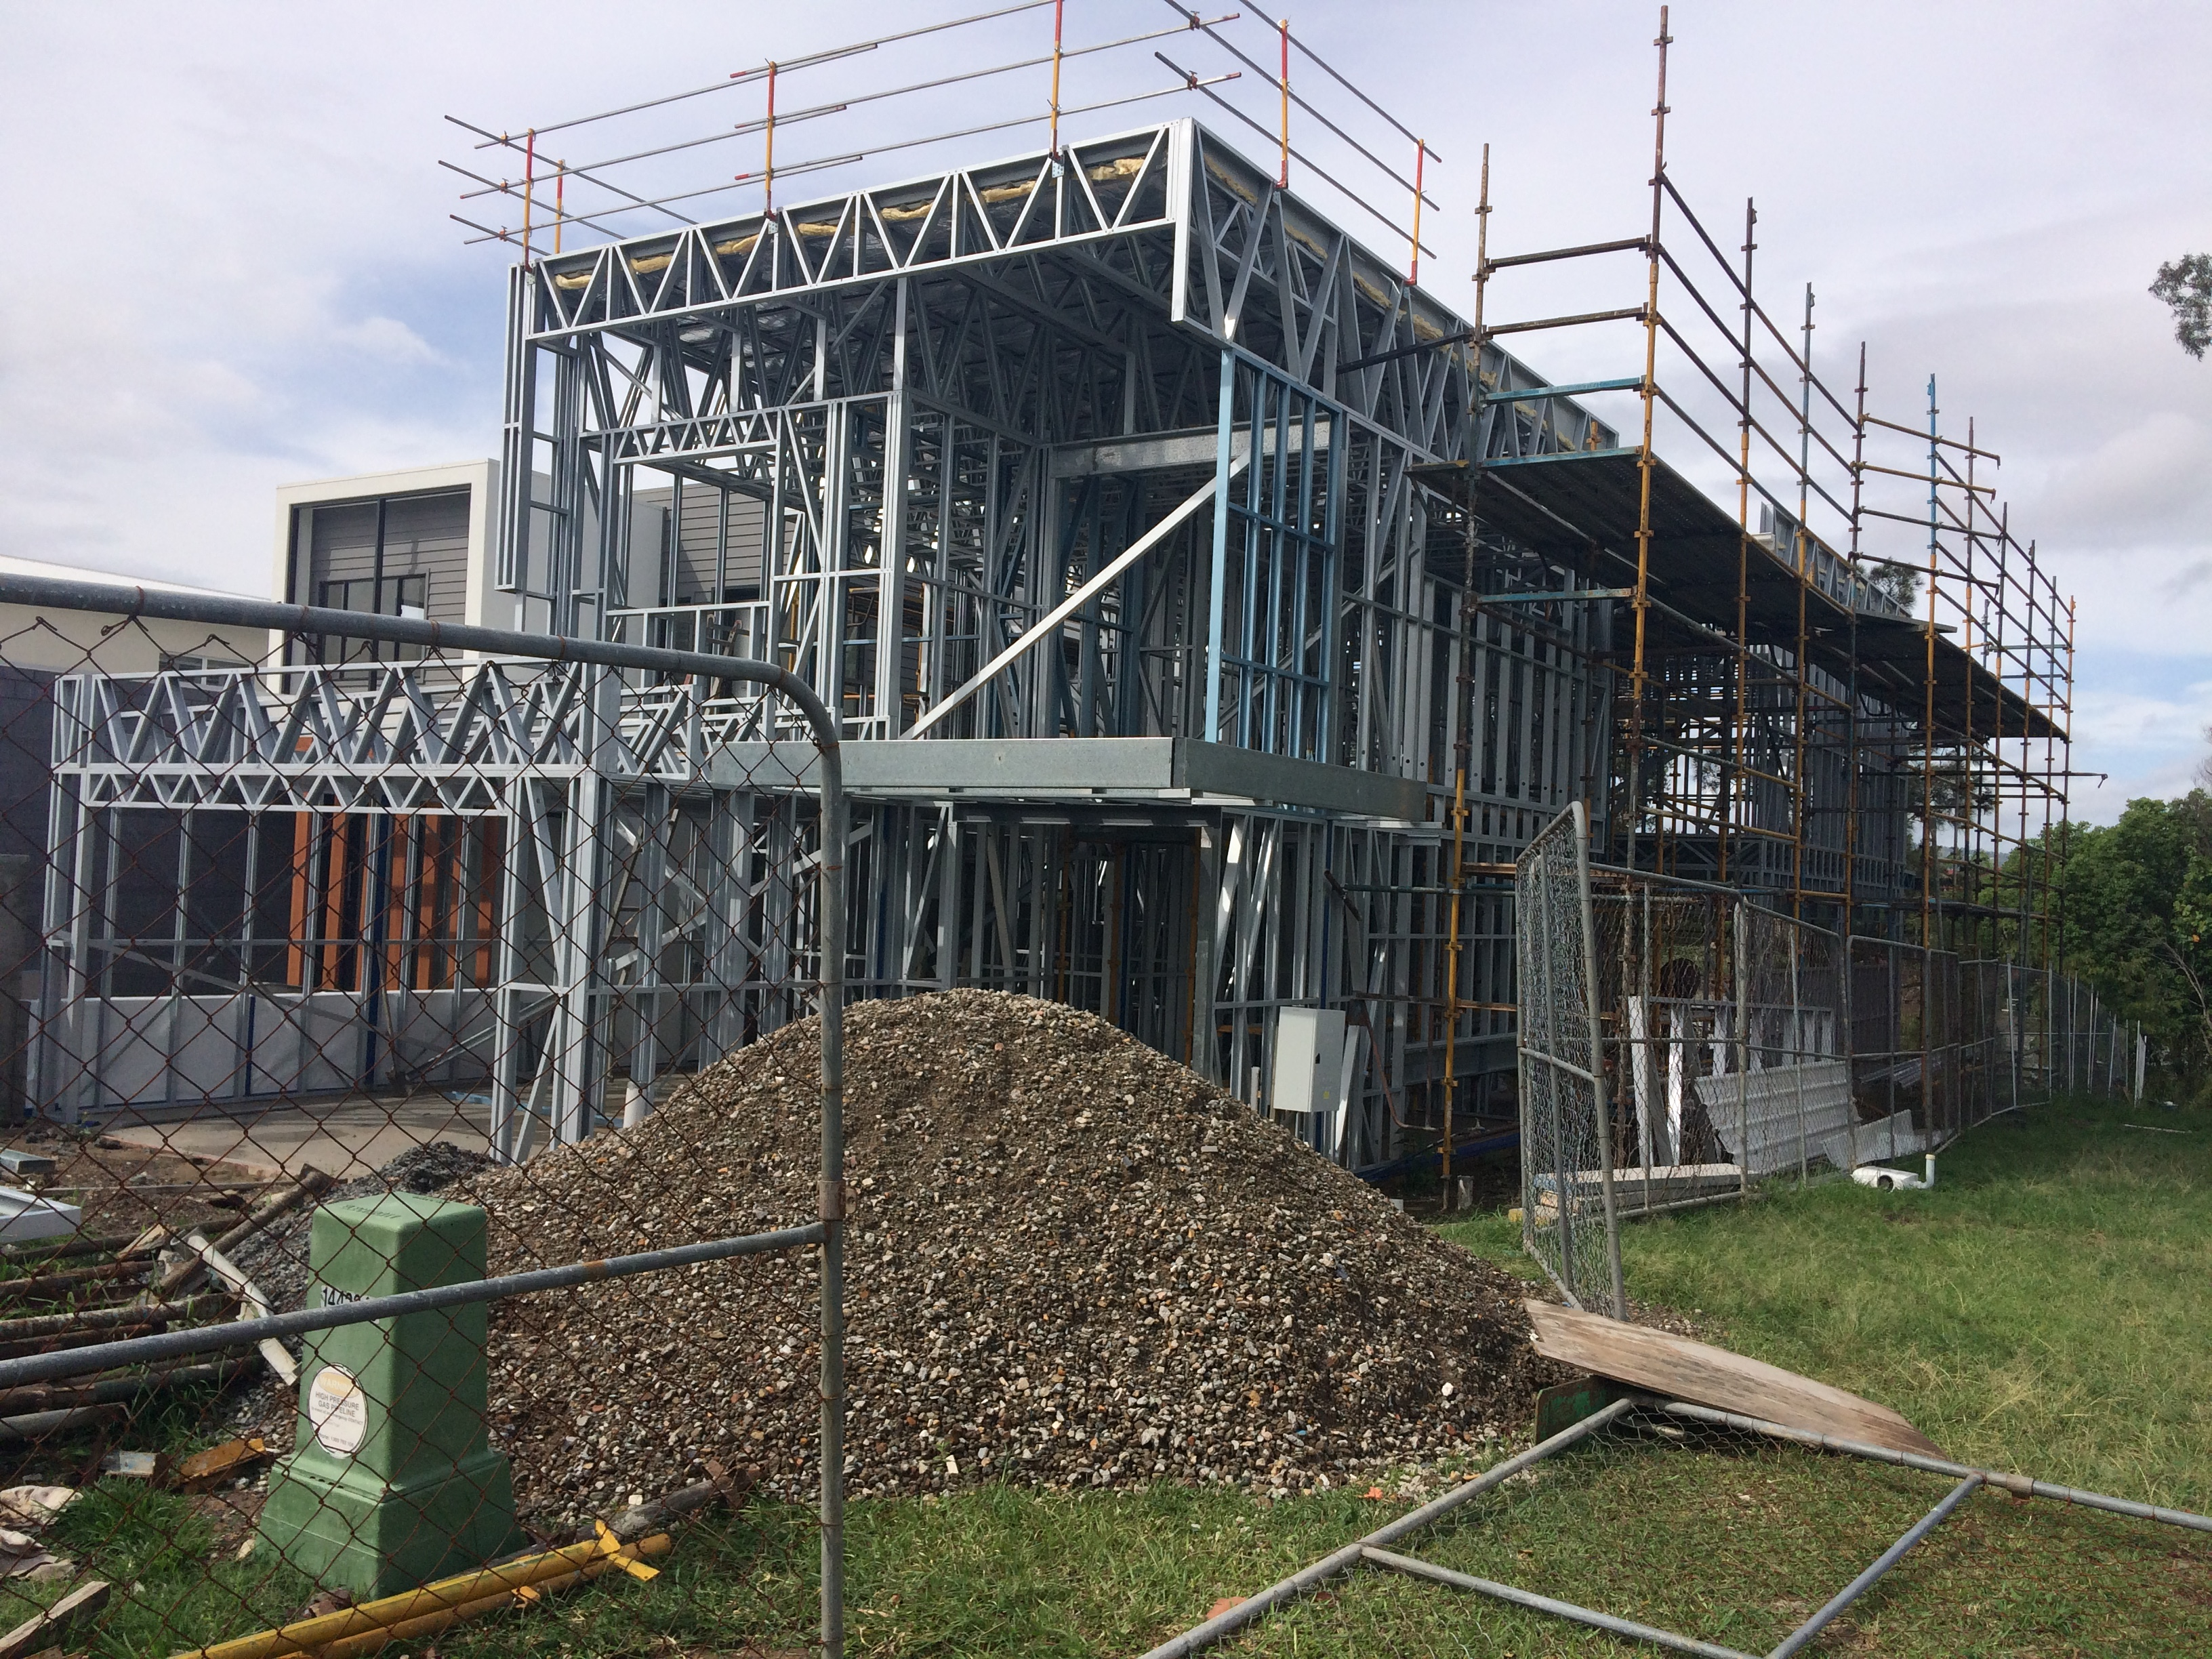 Luxury 2 storey steel frame home installed with structural steel as per engineering specification